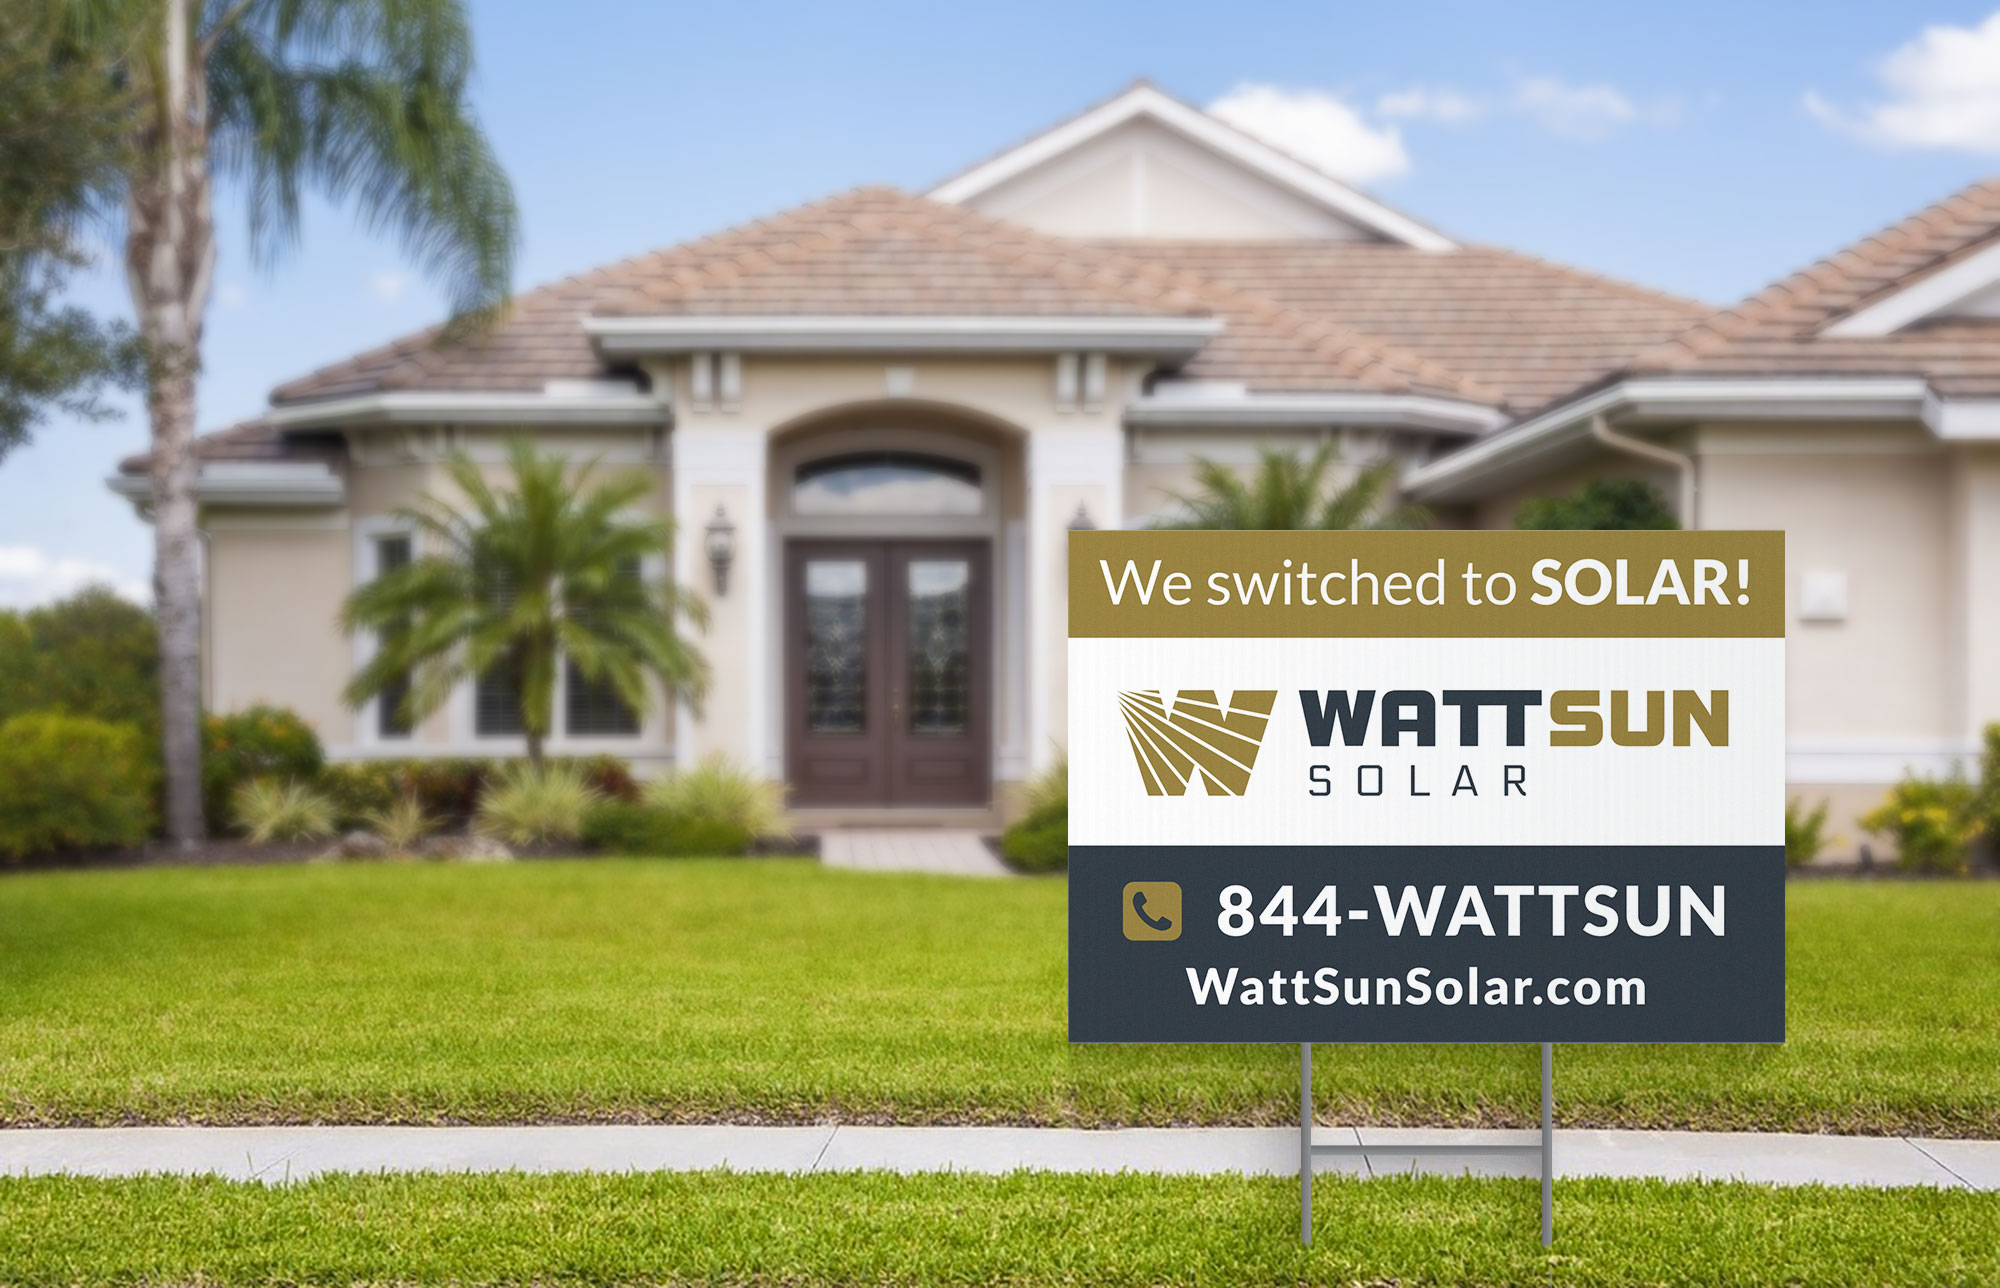 WattSun yard sign design